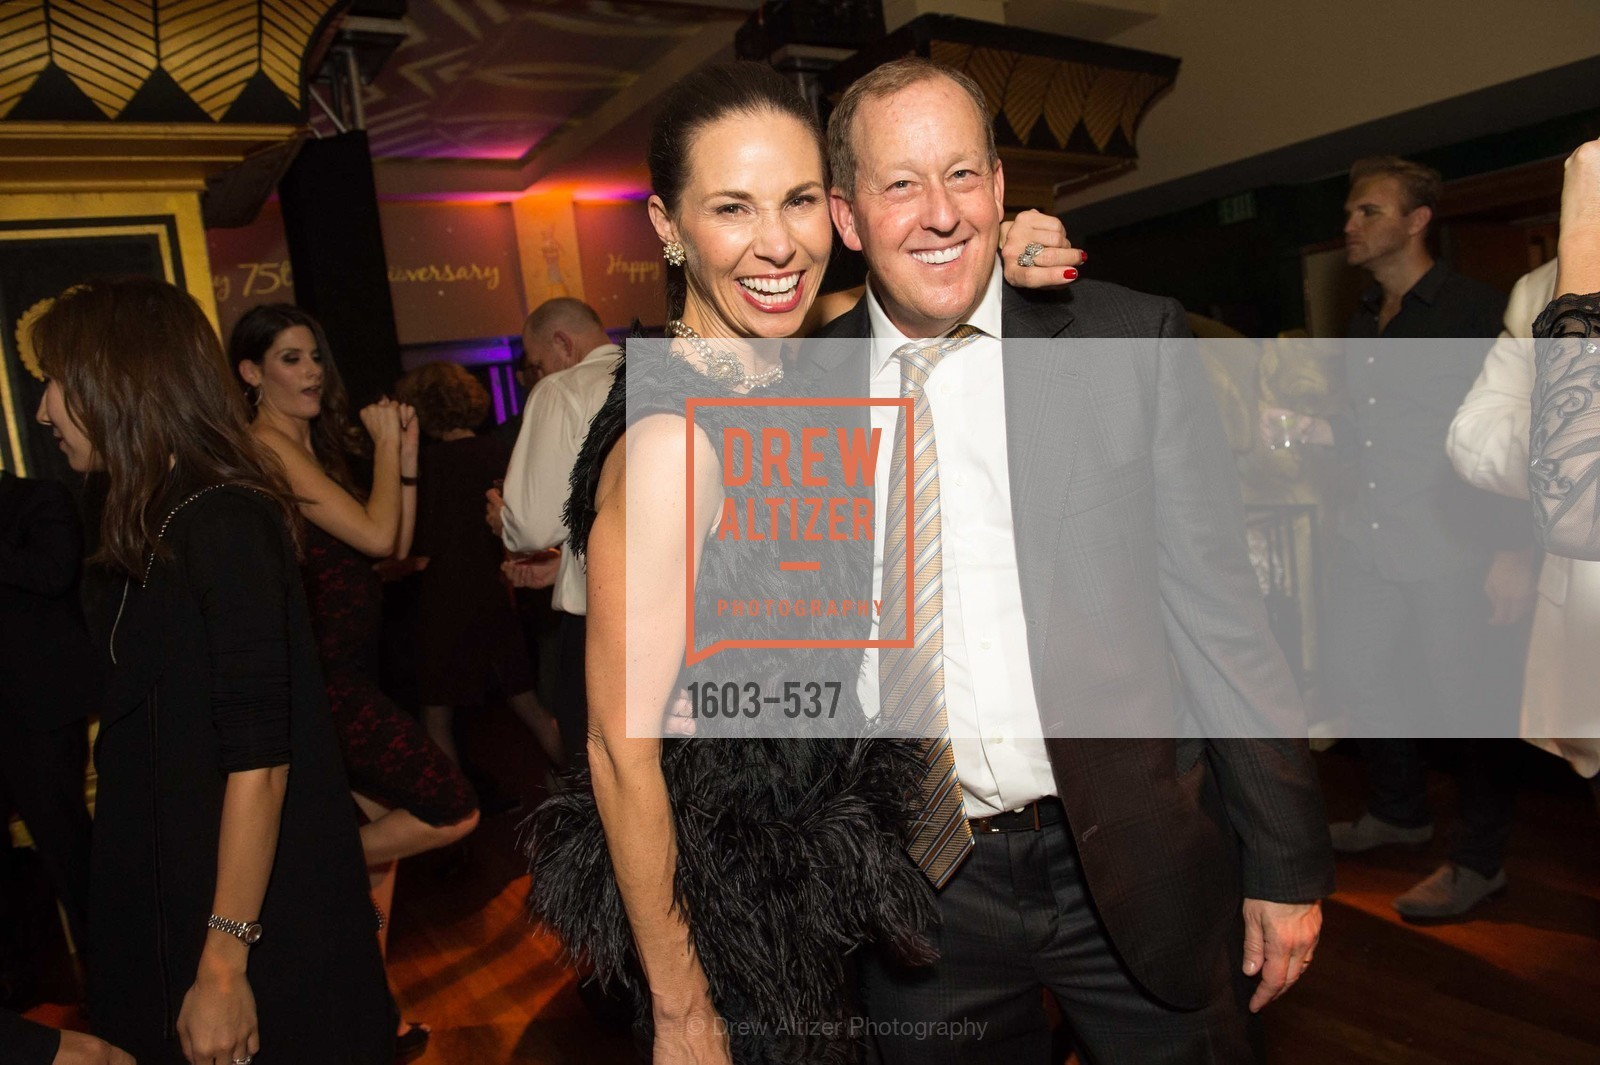 Michael Rosenfeld, TOP OF THE MARK'S 75TH Anniversary Party, US, November 6th, 2014,Drew Altizer, Drew Altizer Photography, full-service agency, private events, San Francisco photographer, photographer california